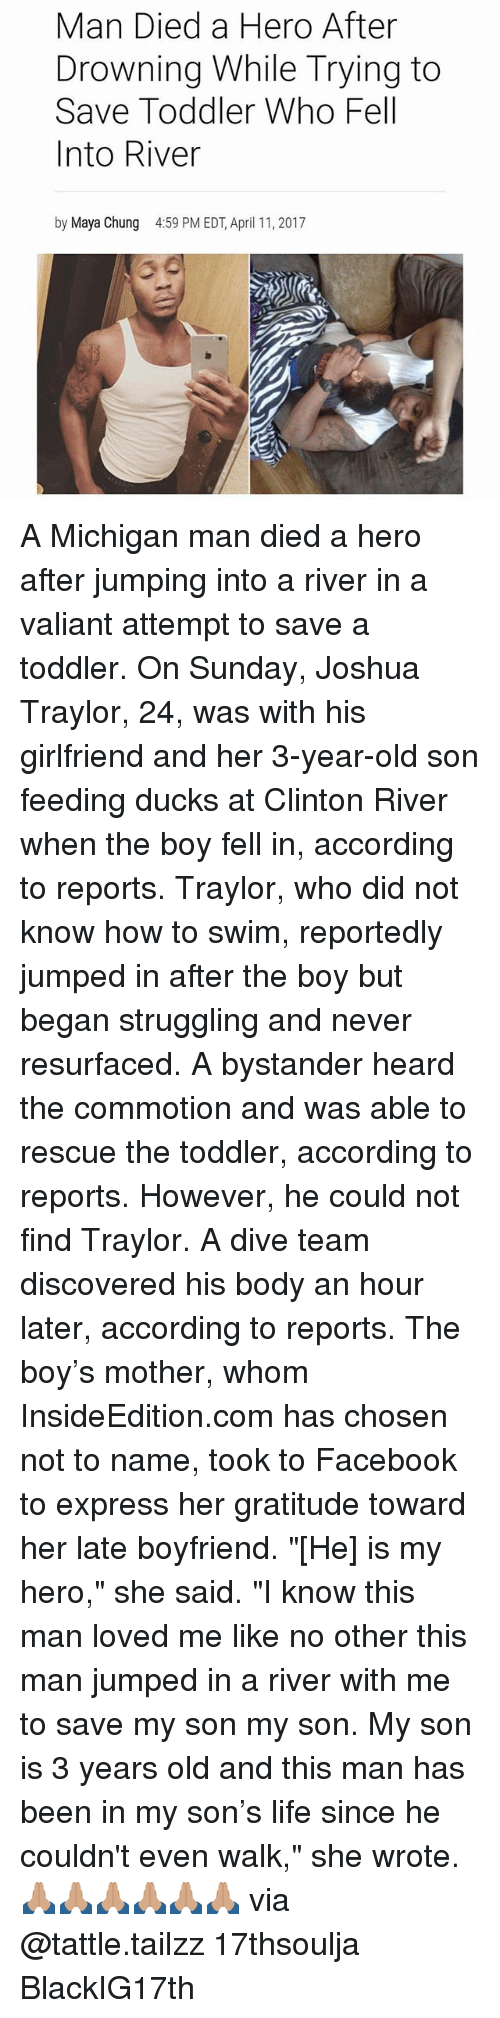 """Facebook, Life, and Memes: Man Died a Hero After  Drowning While Trying to  Save Toddler Who Fell  Into River  by Maya Chung  4:59 PM EDT, April 11, 2017 A Michigan man died a hero after jumping into a river in a valiant attempt to save a toddler. On Sunday, Joshua Traylor, 24, was with his girlfriend and her 3-year-old son feeding ducks at Clinton River when the boy fell in, according to reports. Traylor, who did not know how to swim, reportedly jumped in after the boy but began struggling and never resurfaced. A bystander heard the commotion and was able to rescue the toddler, according to reports. However, he could not find Traylor. A dive team discovered his body an hour later, according to reports. The boy's mother, whom InsideEdition.com has chosen not to name, took to Facebook to express her gratitude toward her late boyfriend. """"[He] is my hero,"""" she said. """"I know this man loved me like no other this man jumped in a river with me to save my son my son. My son is 3 years old and this man has been in my son's life since he couldn't even walk,"""" she wrote. 🙏🏽🙏🏽🙏🏽🙏🏽🙏🏽🙏🏽 via @tattle.tailzz 17thsoulja BlackIG17th"""